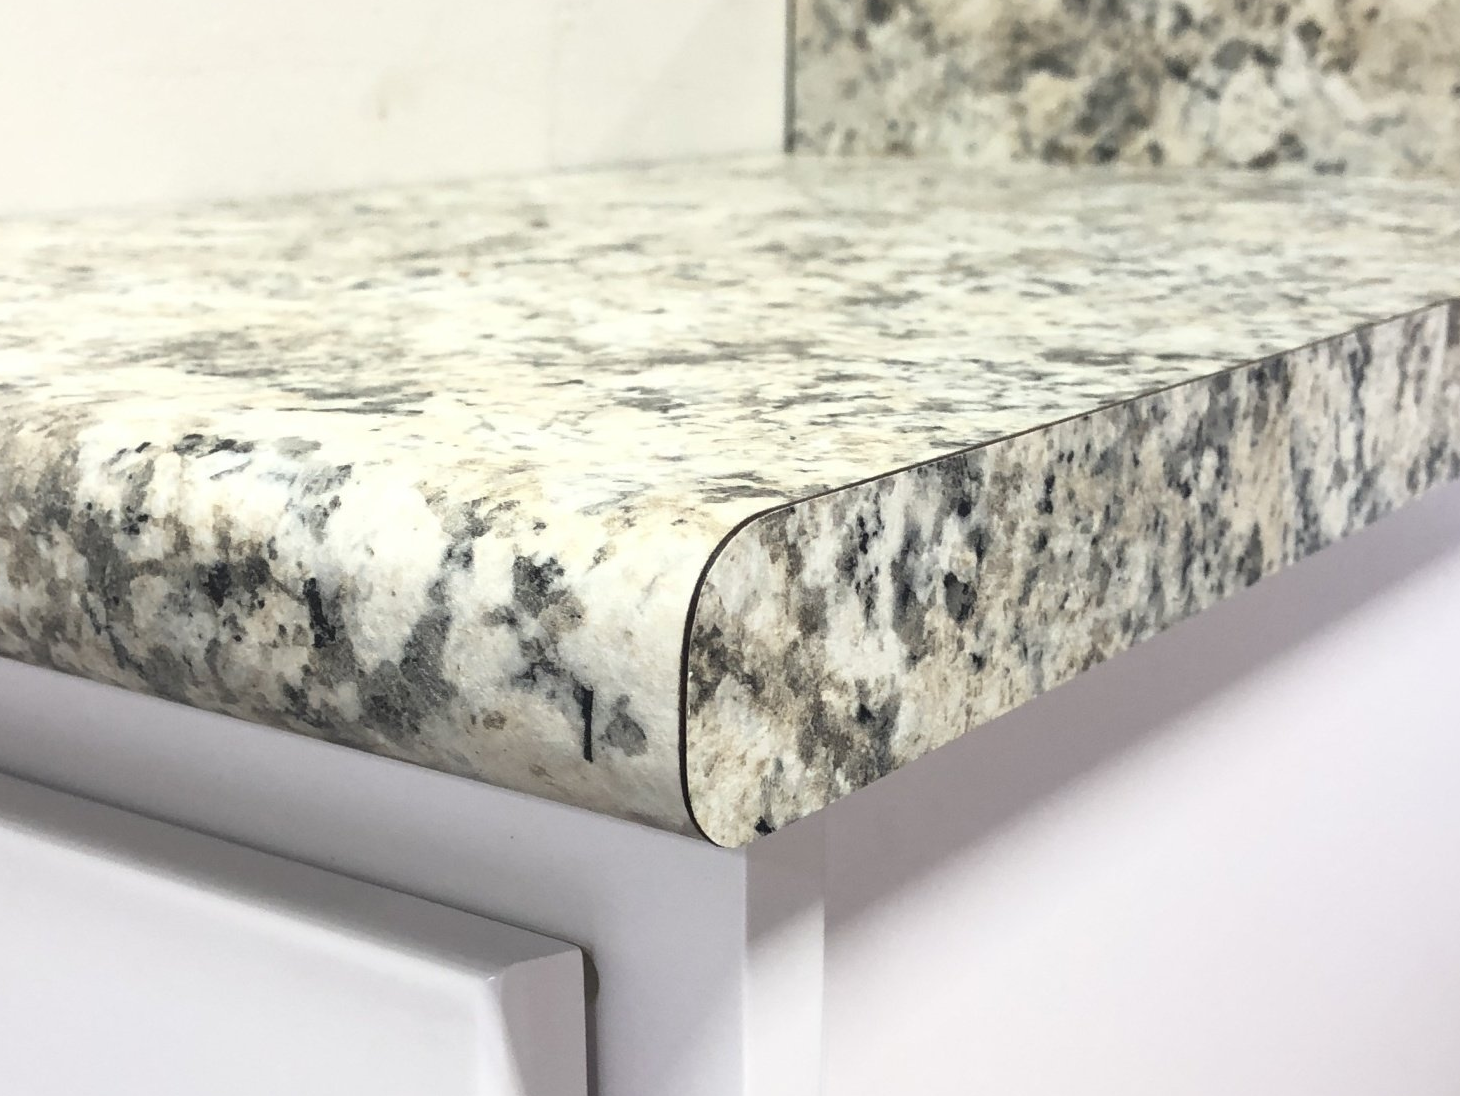 Affordable Quality Cabinets & Countertops in Stock | Jacksonville, FL